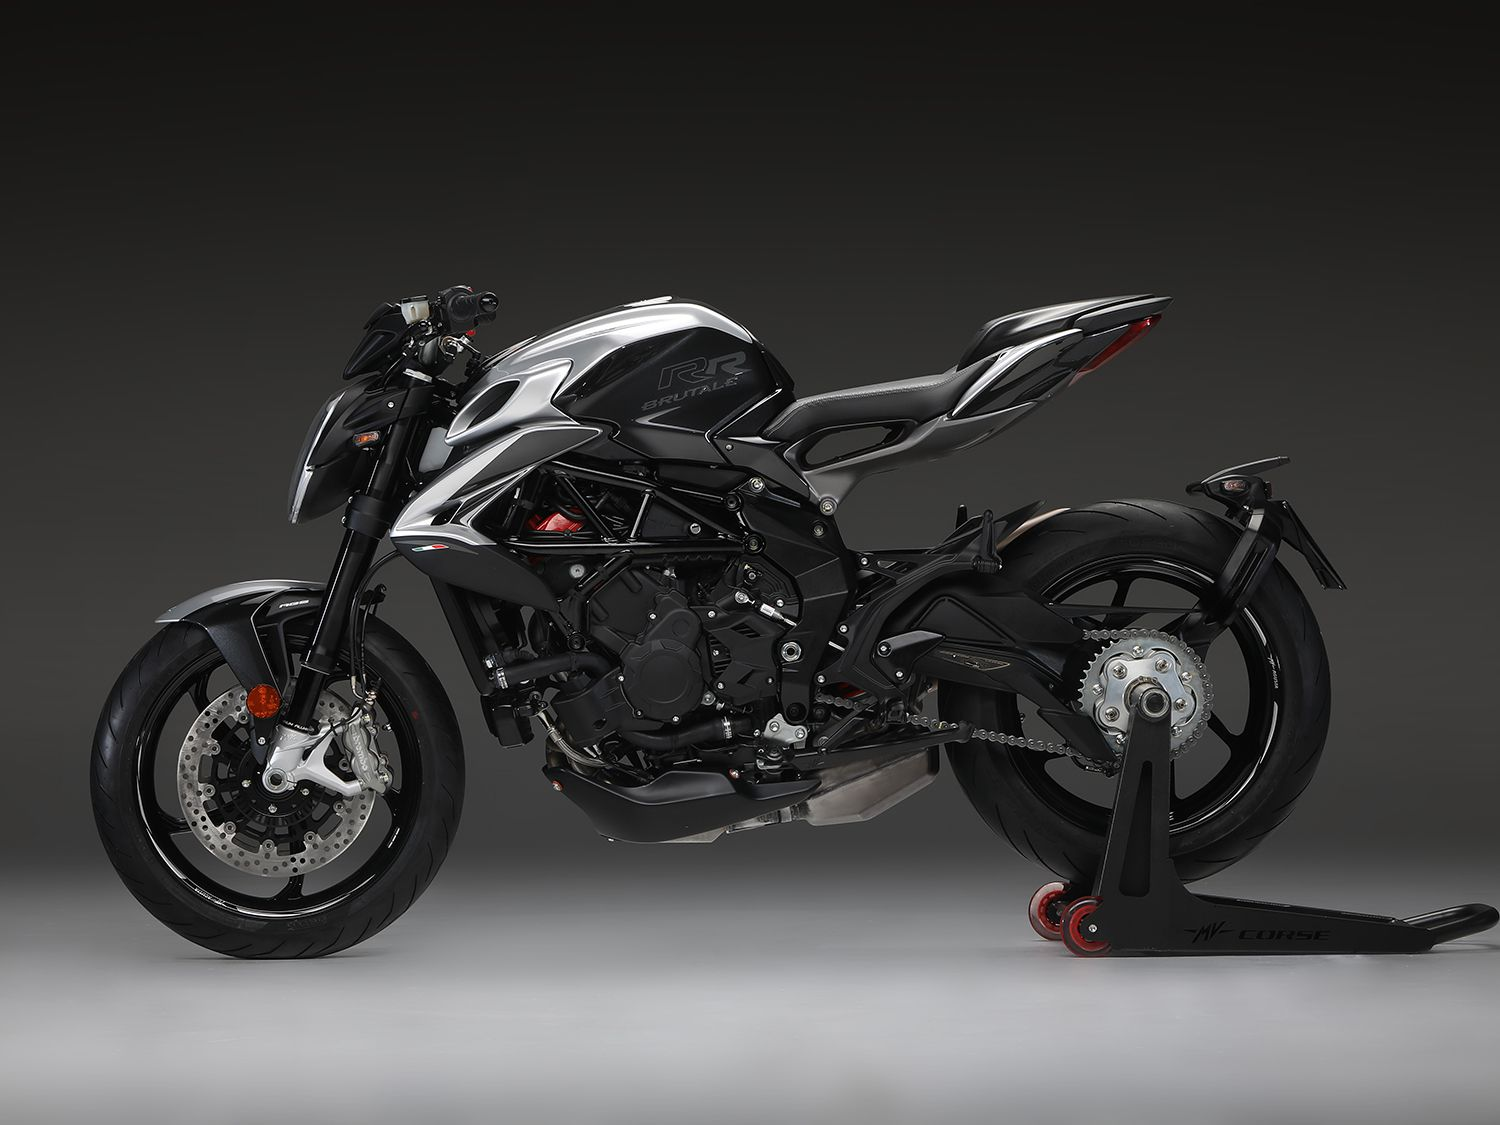 <h2>2020 MV Agusta Brutale 800 RR SCS</h2> </br> Like the Dragster 800 RR SCS, the 2020 Brutale 800 RR SCS will incorporate the SCS 2.0 (Smart Clutch System) for clutch-free starts and stopping.